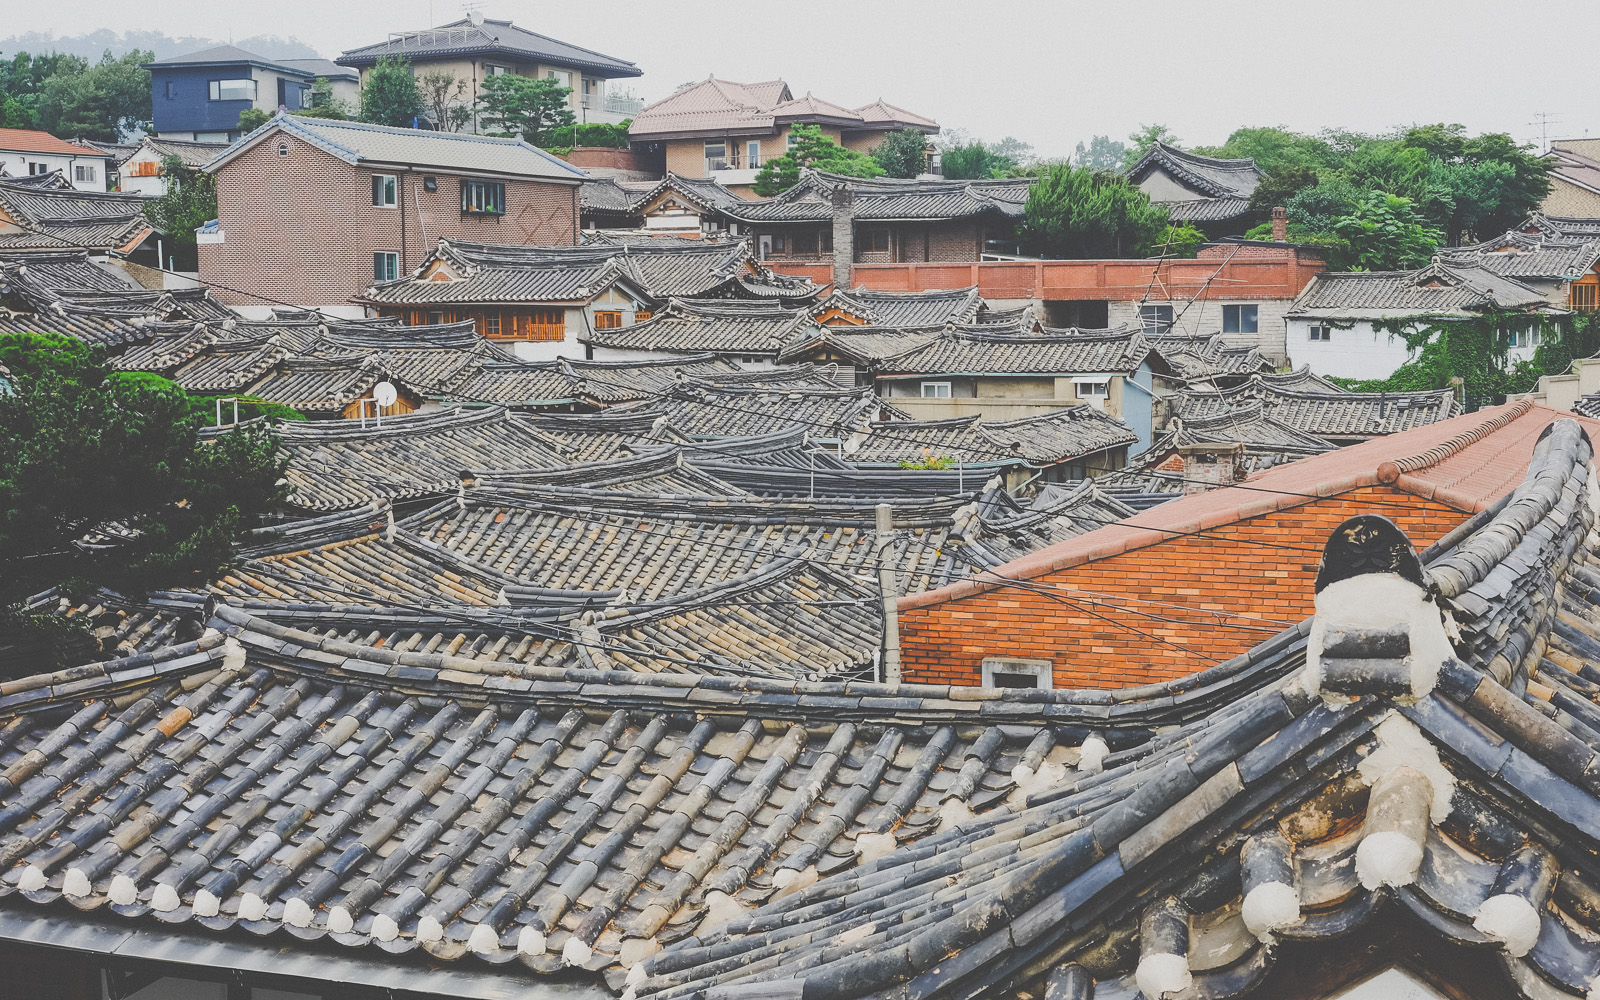 Bukchon Village rooftops, South Korea